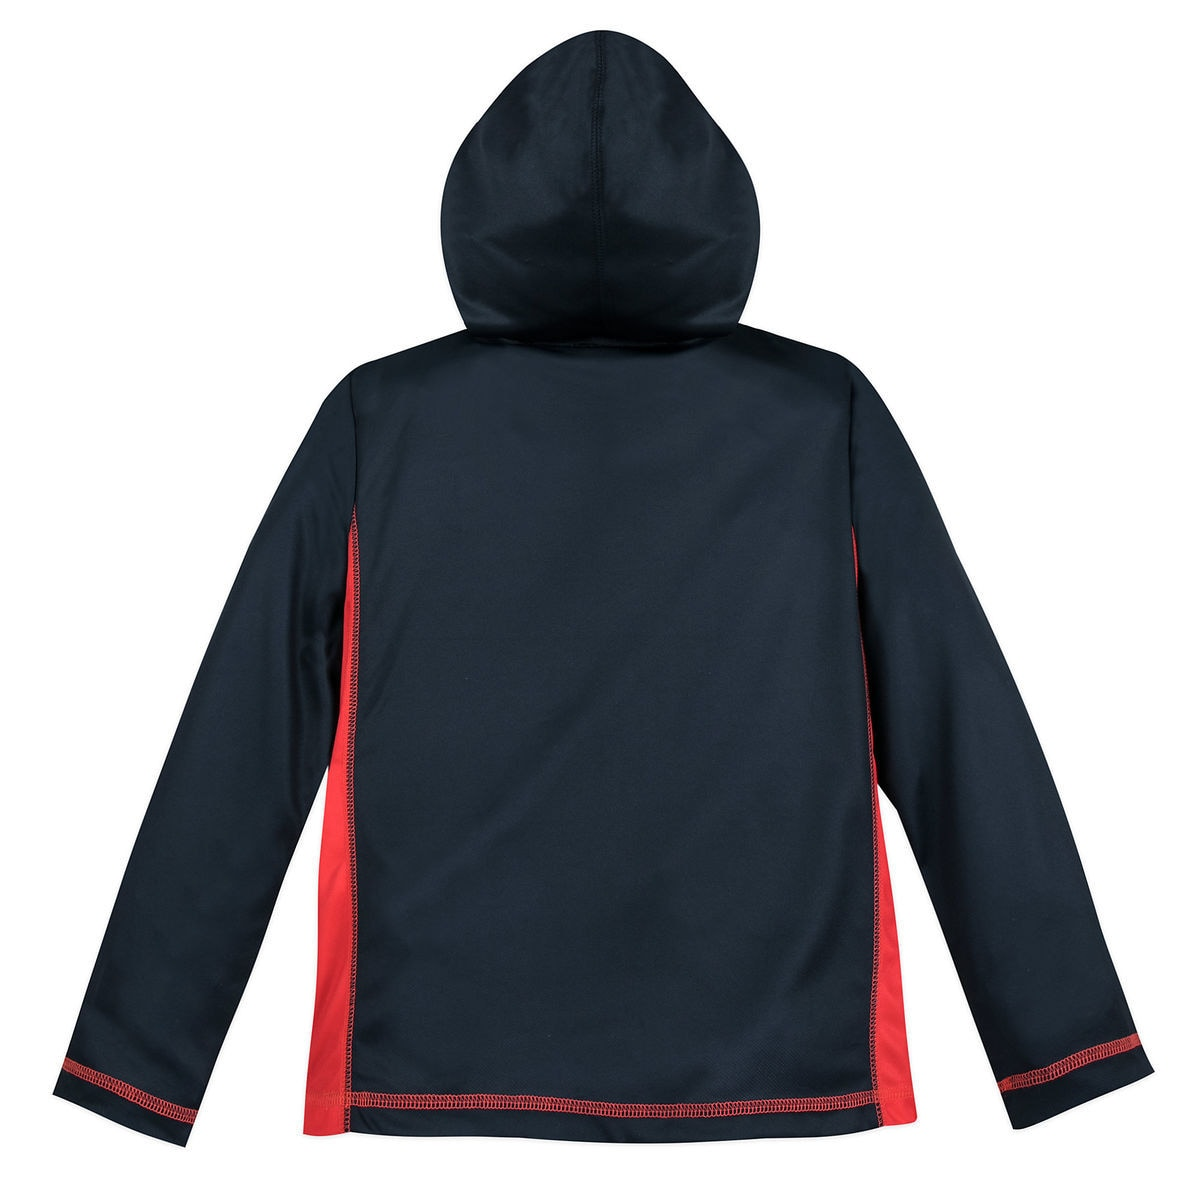 86313a290f39 Darth Vader Hooded Zip Jacket for Boys